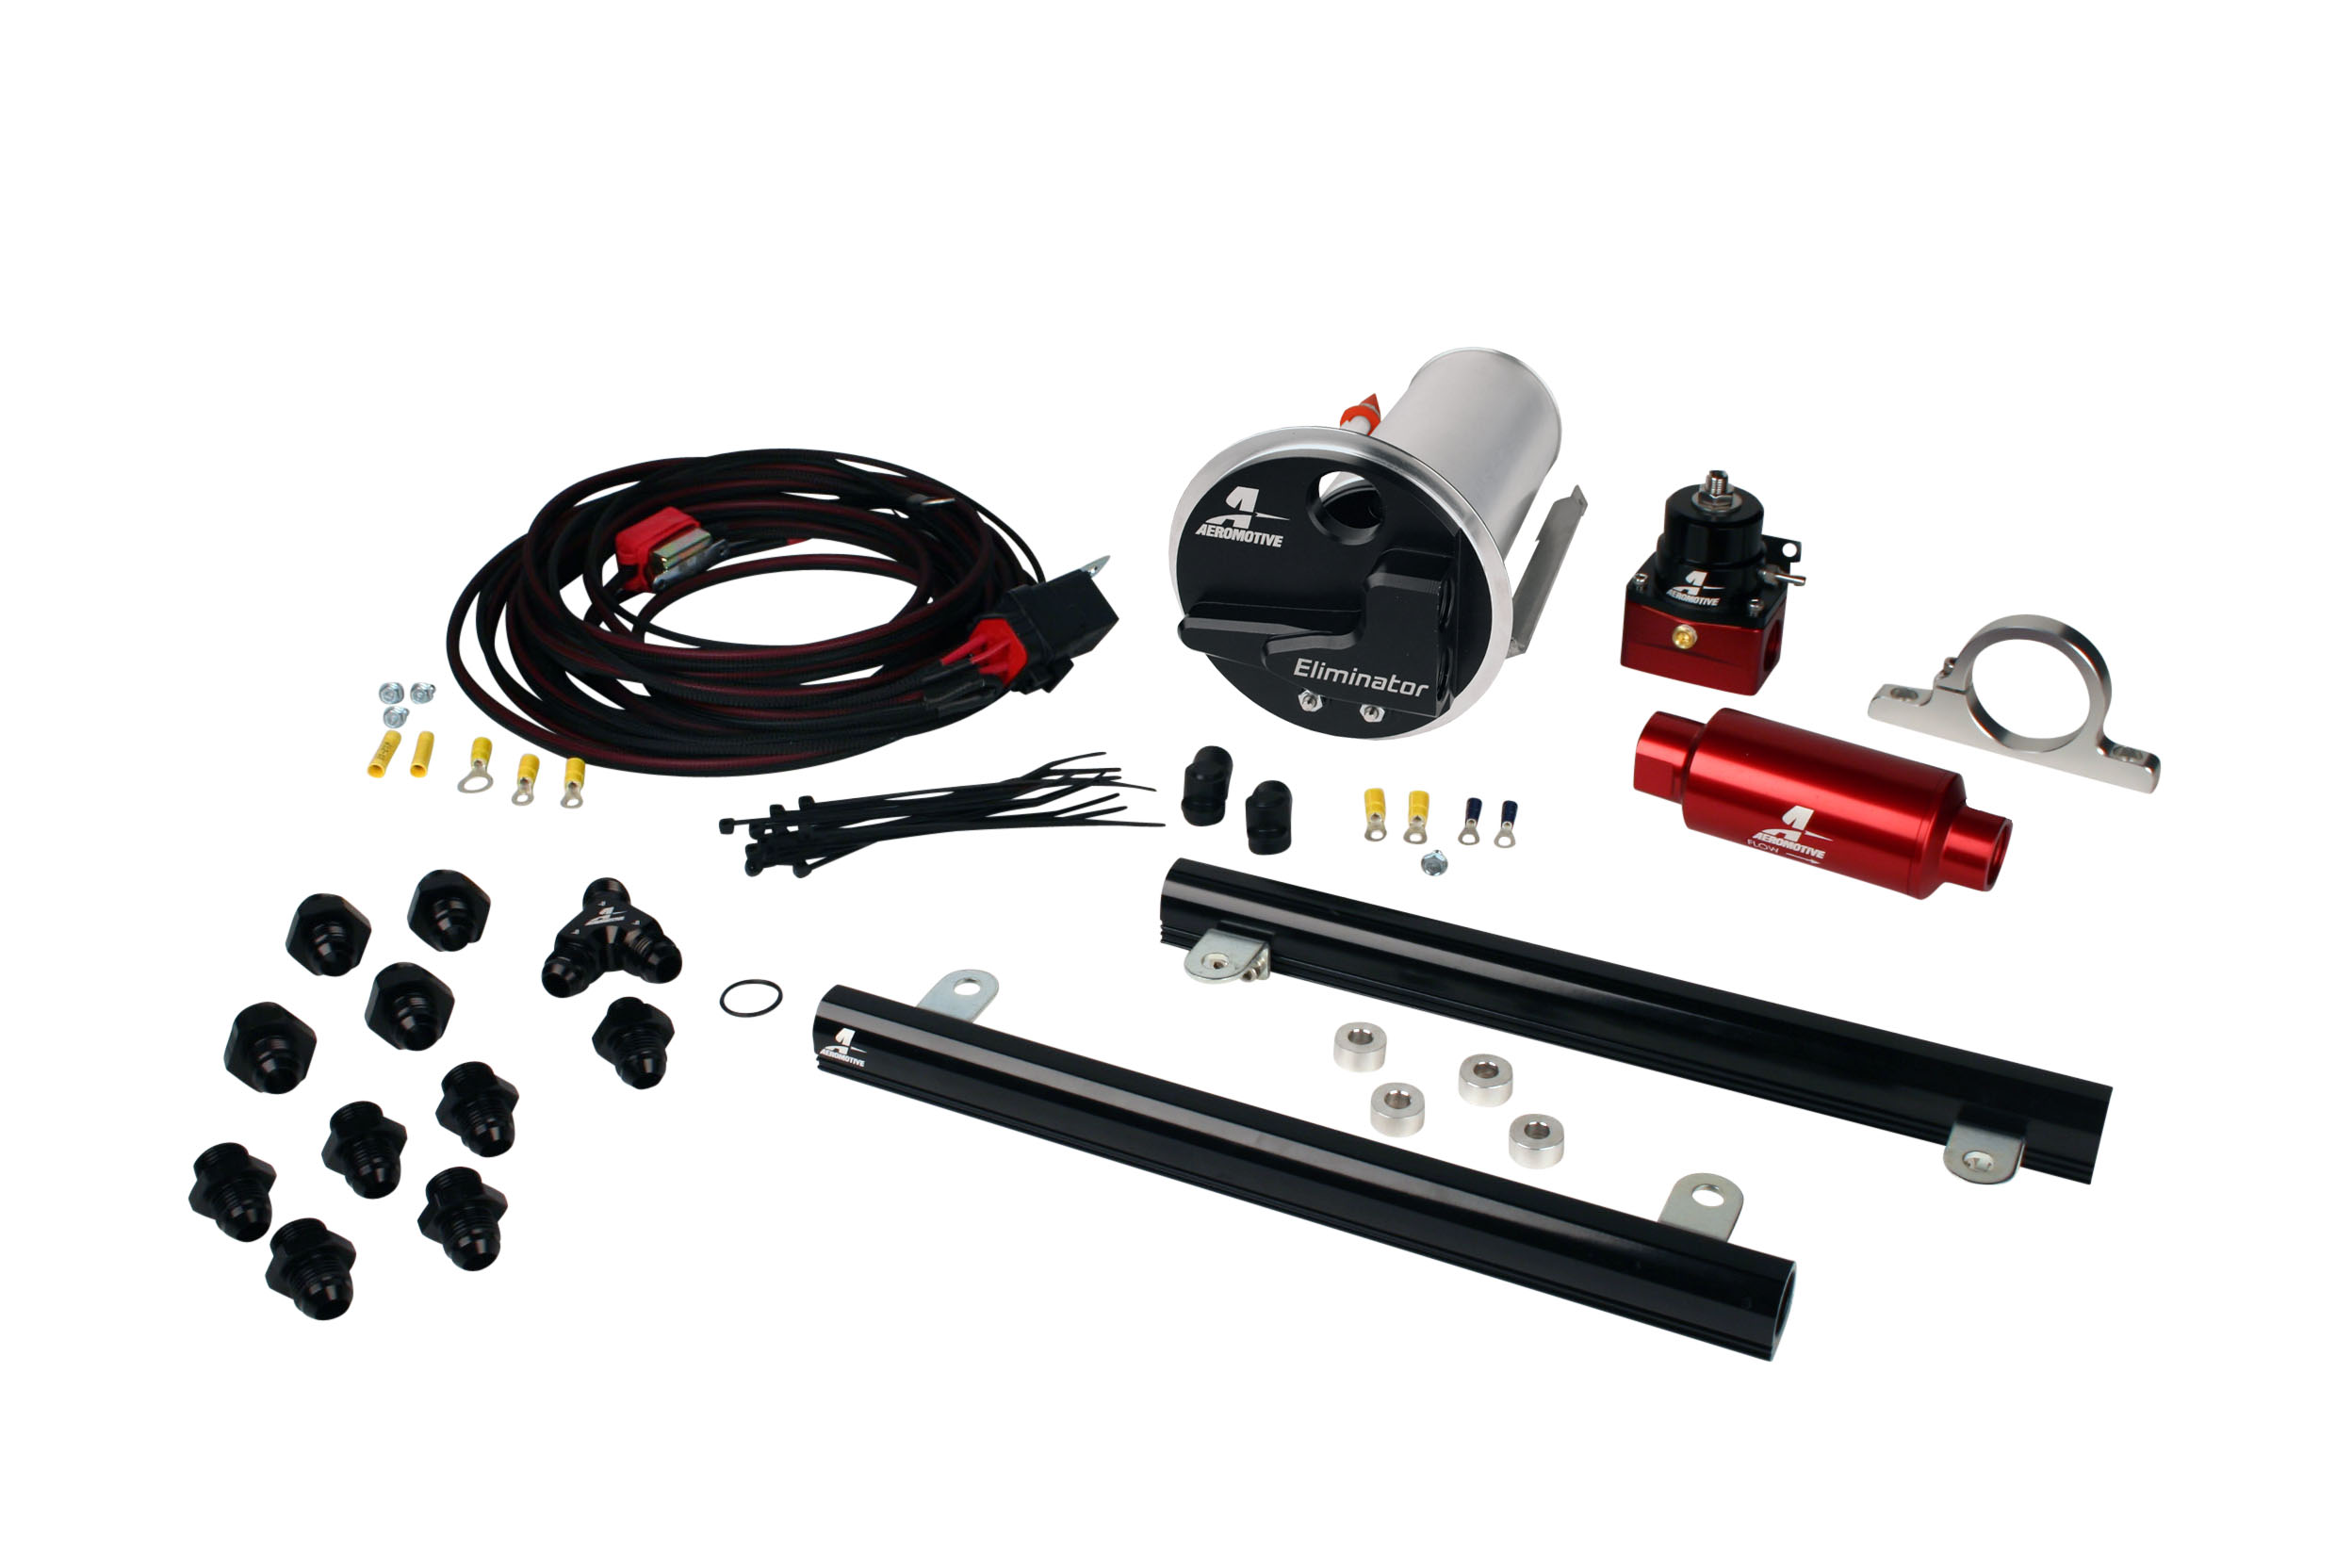 2007-2012 Ford Mustang Shelby GT500 Aeromotive Stealth Eliminator Race Fuel System w/5.4L CJ Fuel Rails